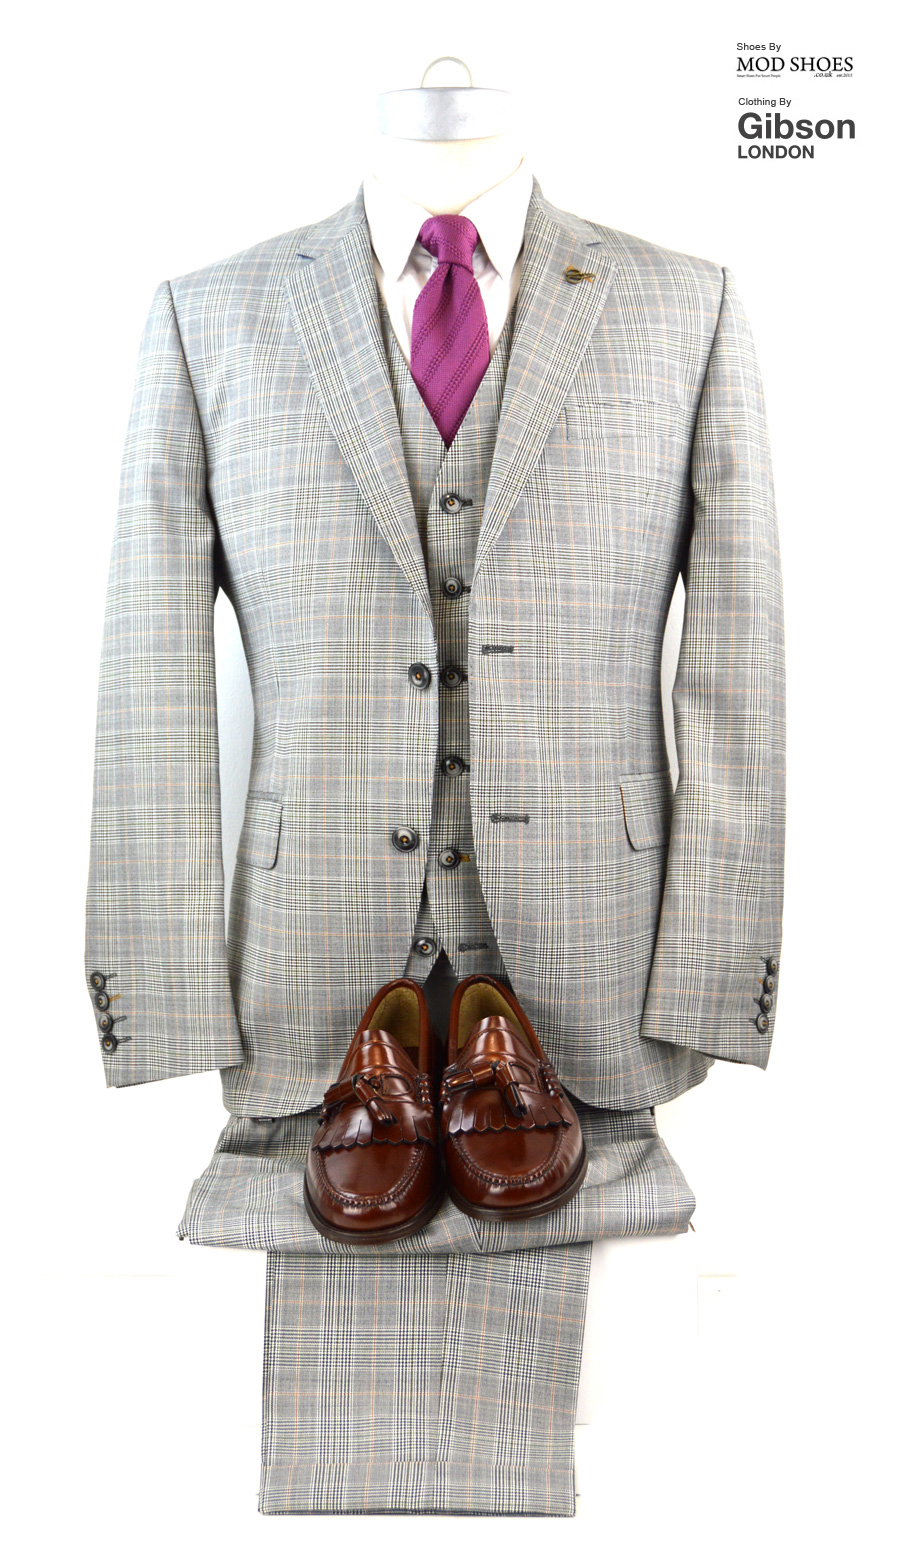 modshoes-prince-of-wales-suit-from-gibson-clothing